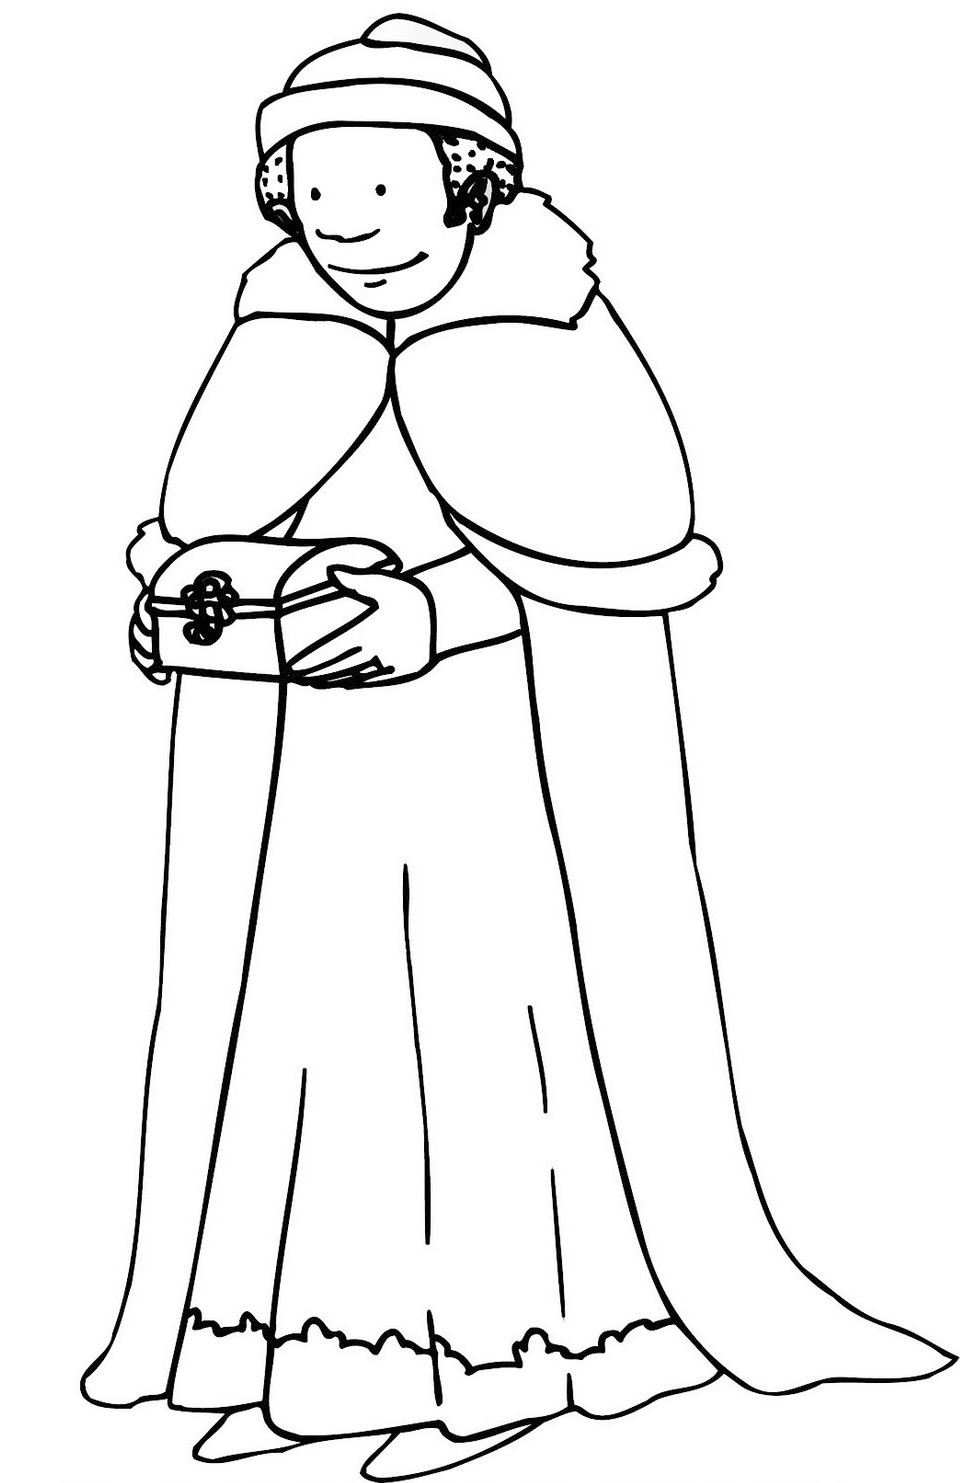 matthew 25 coloring pages - photo#43